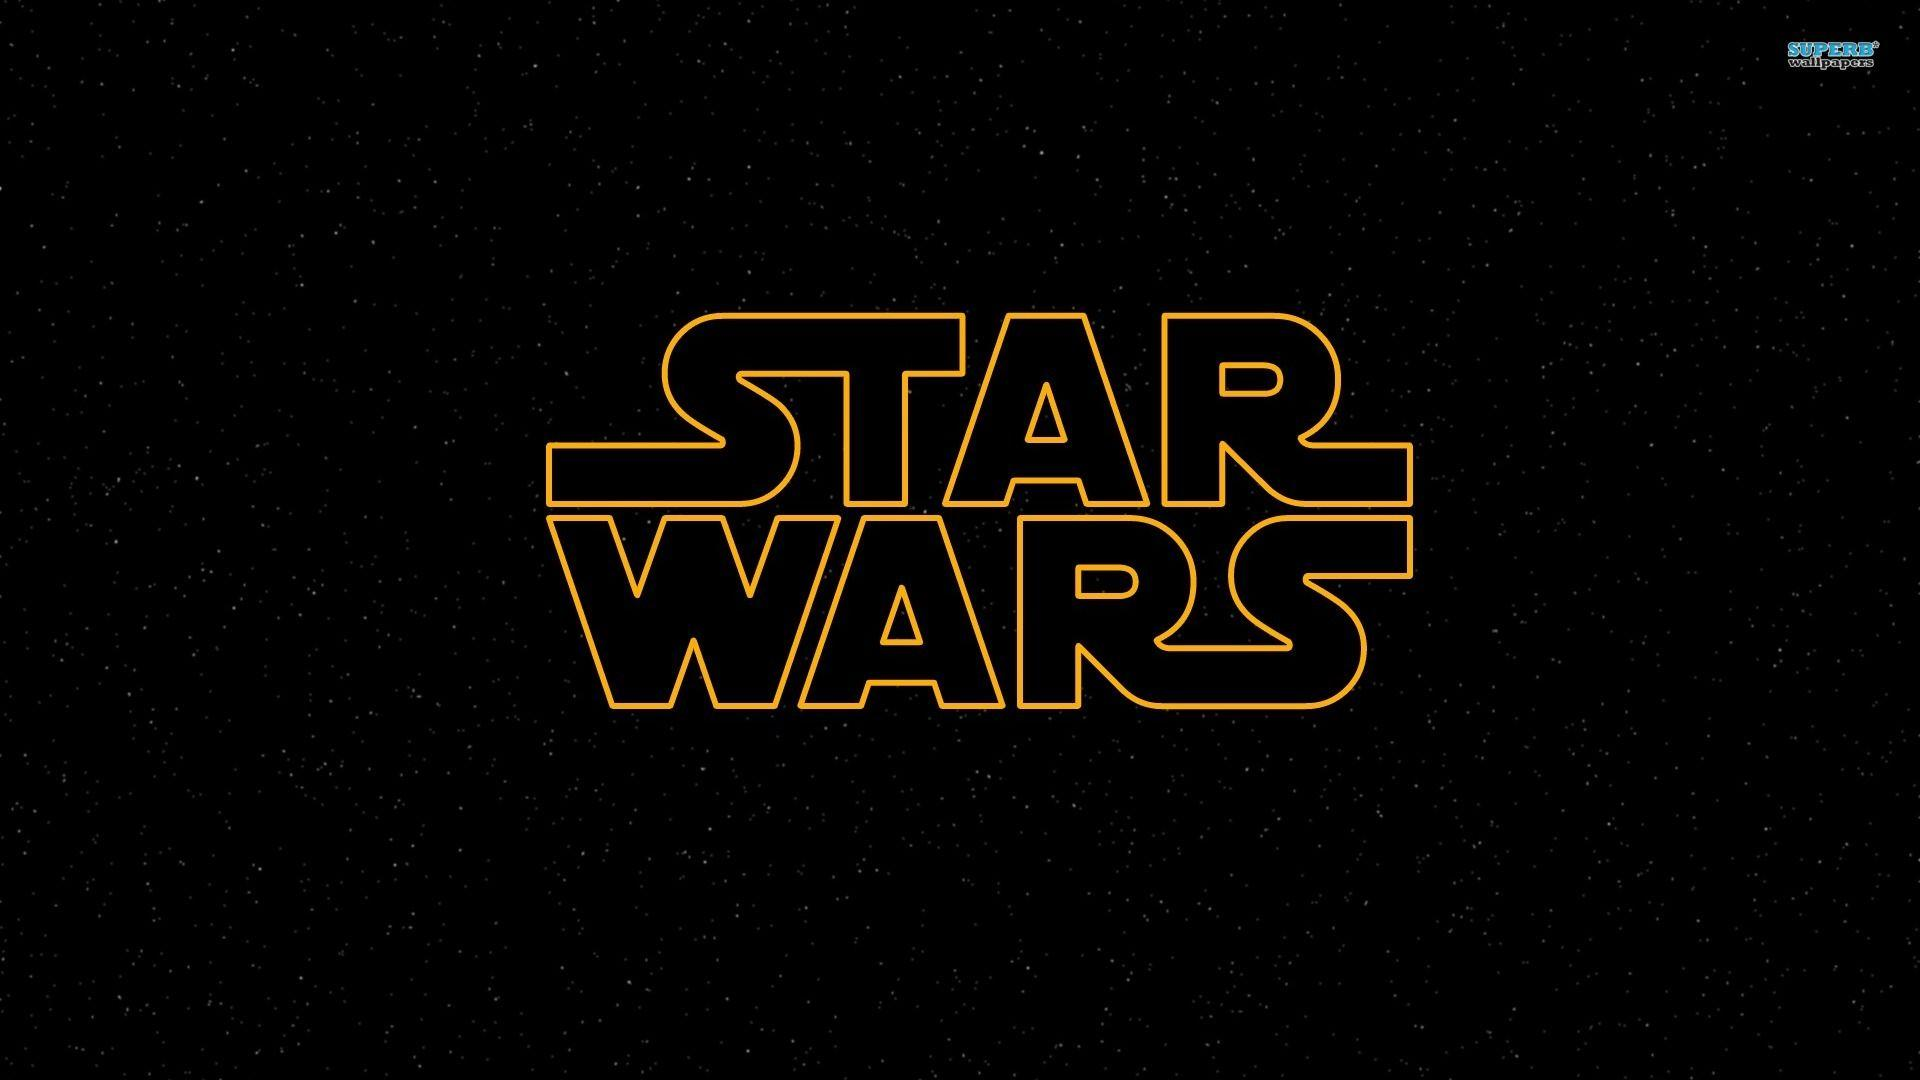 1920x1080 Star Wars Wallpapers 1920x1080